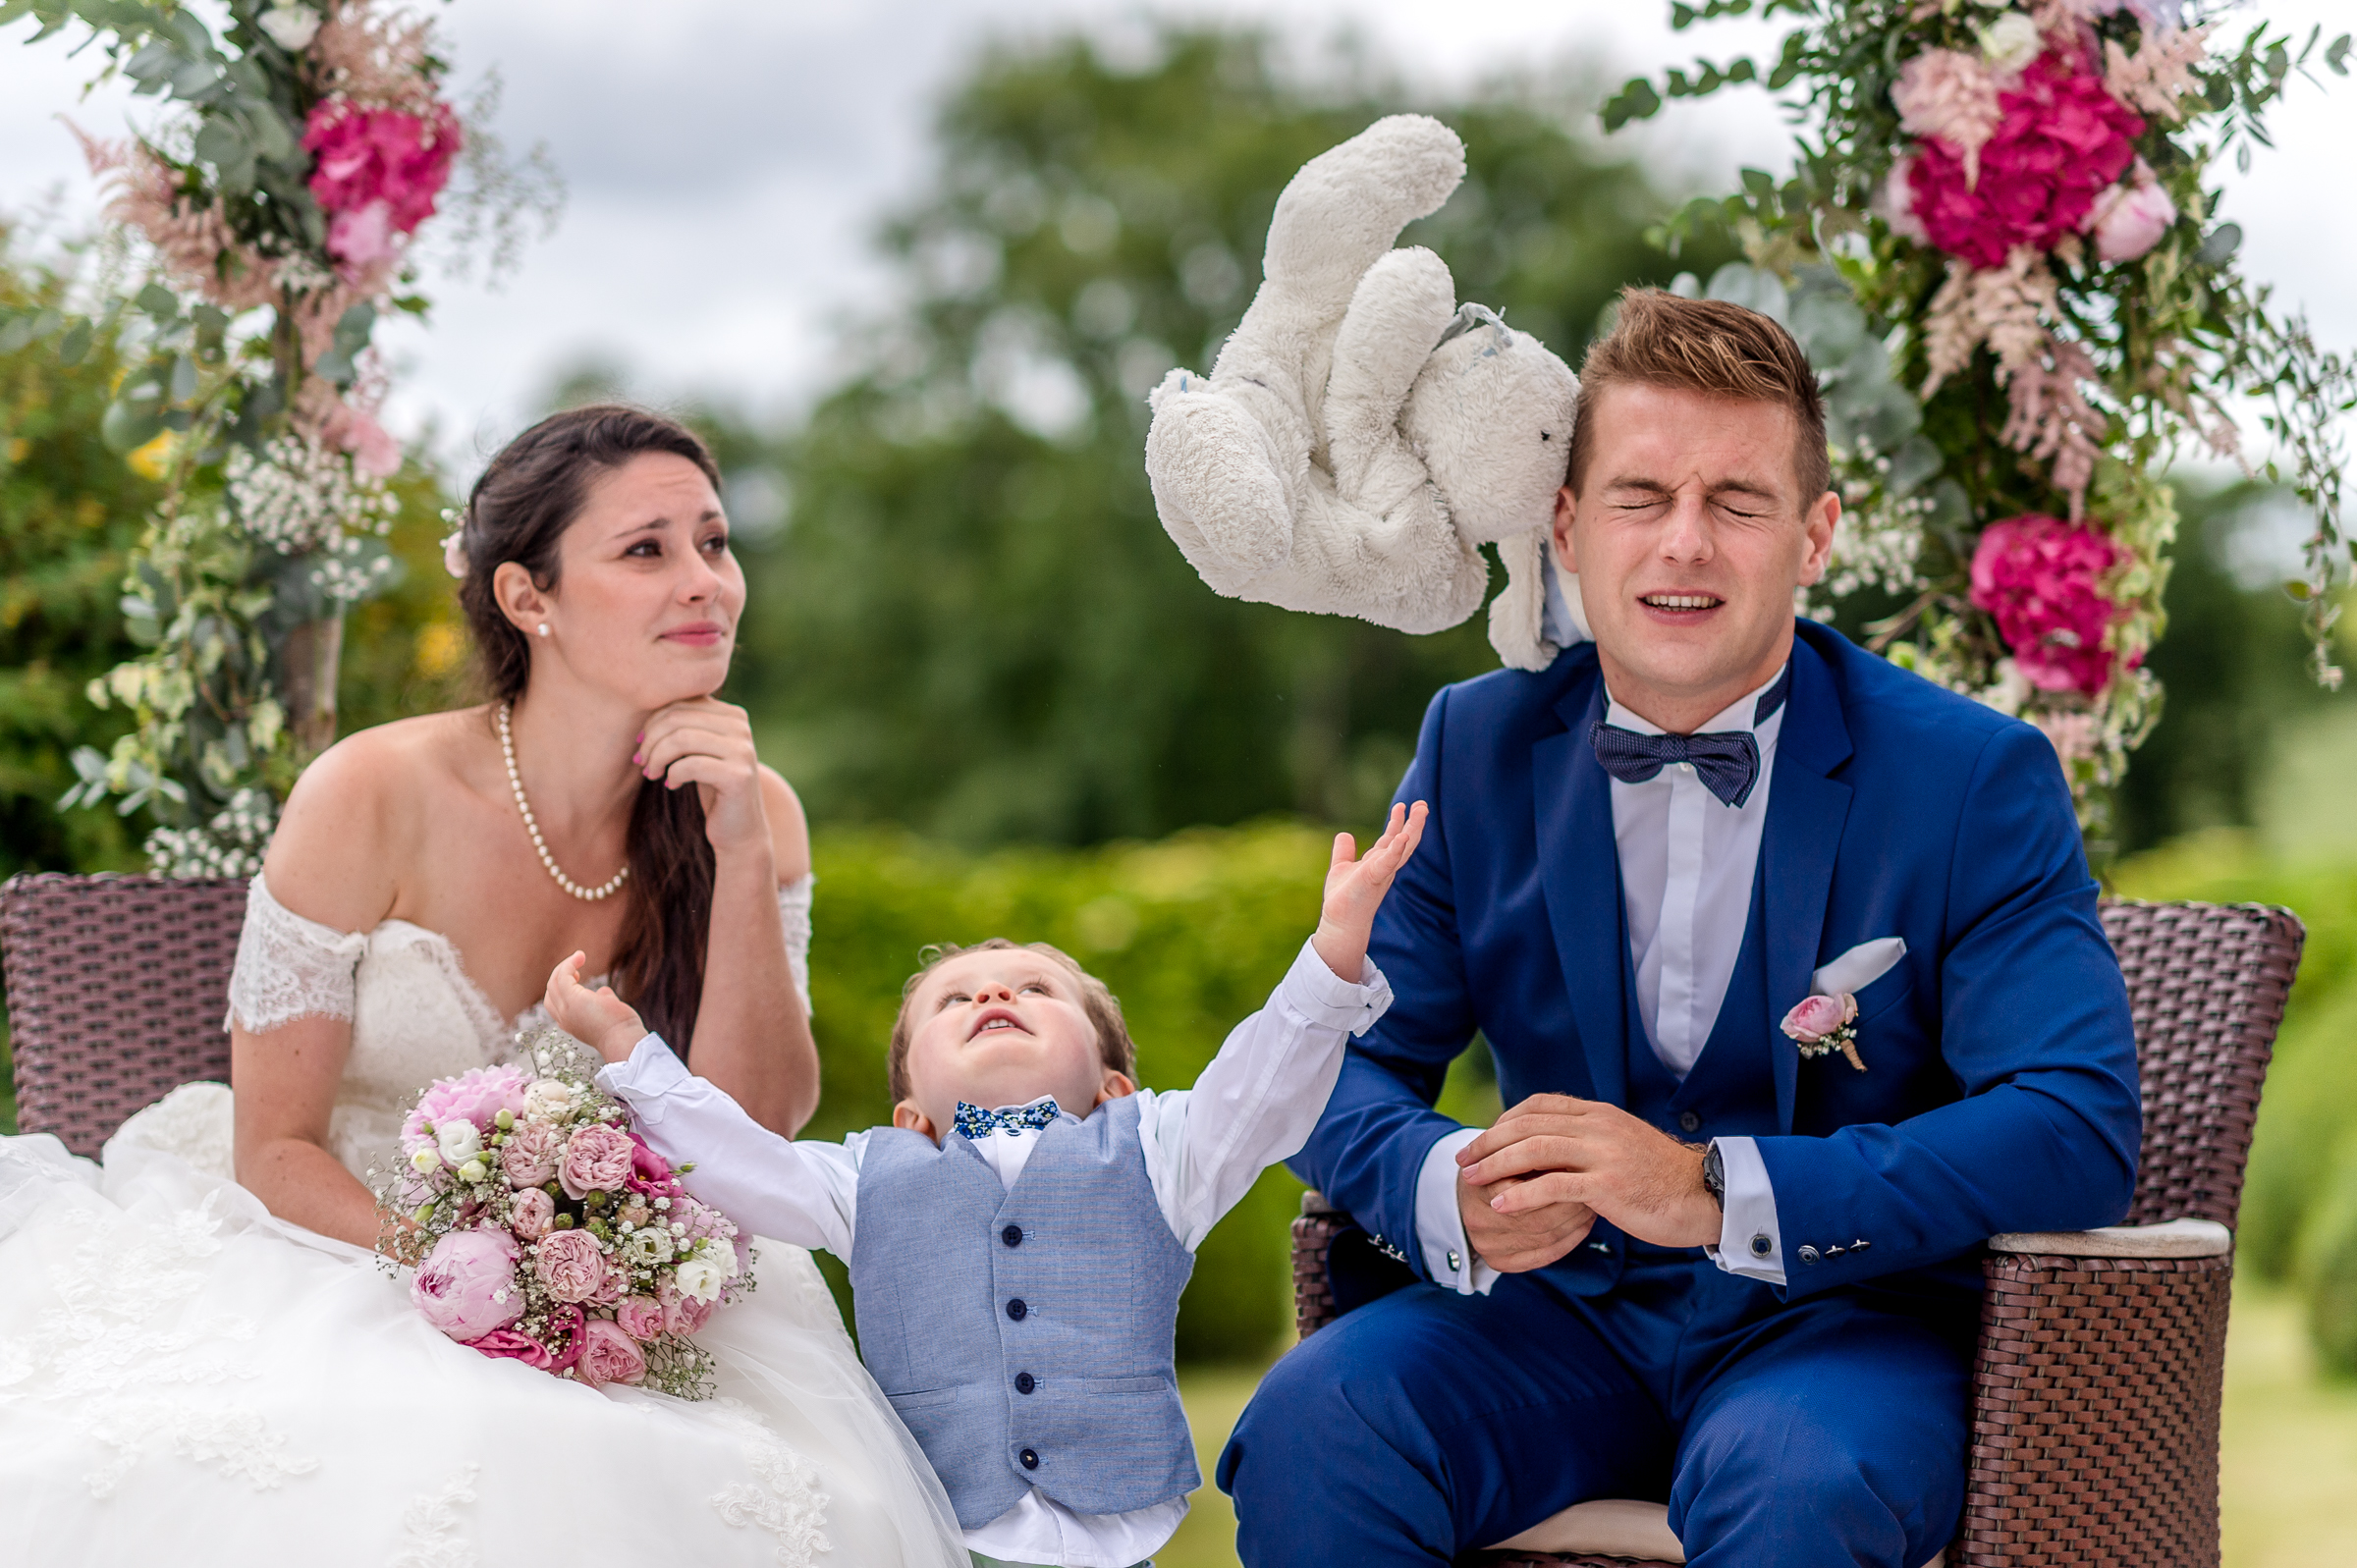 Couple with little boy and airborne stuffed bunny - photo by Gaelle Le Berre Photography